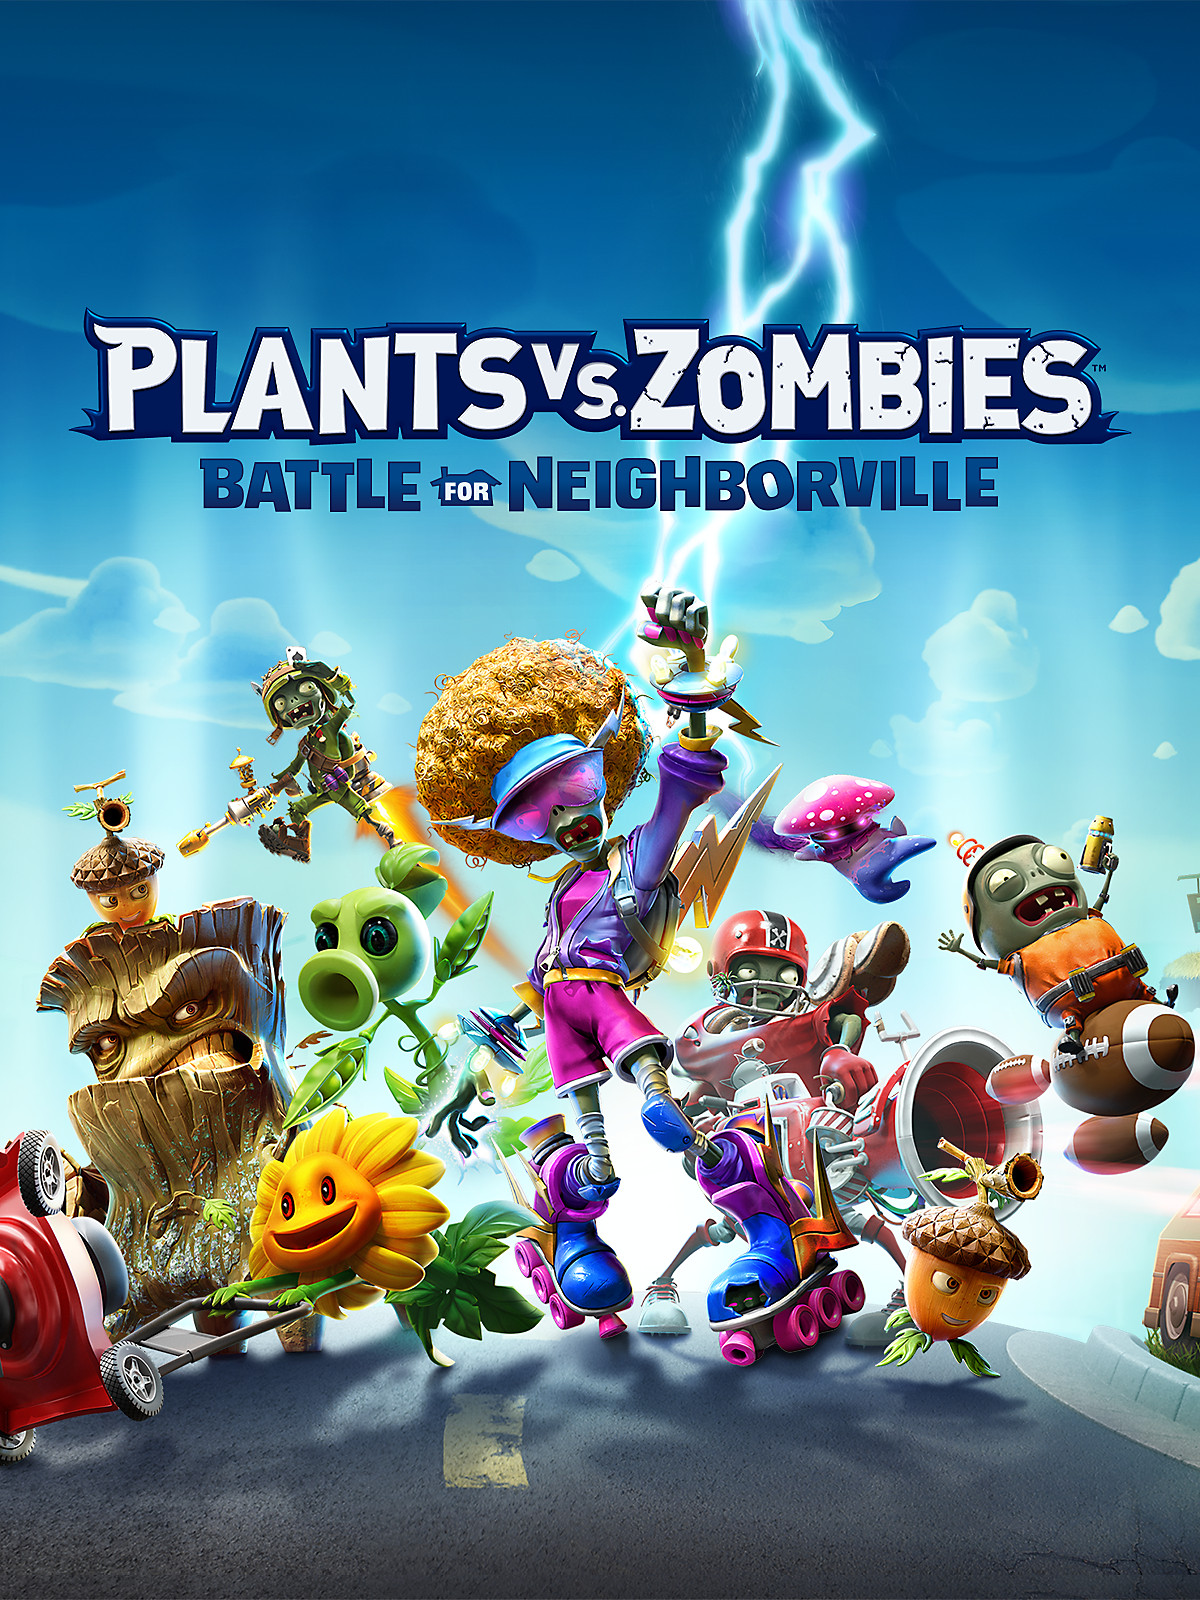 plants-vs-zombies-battle-for-neighborville-box-art-01-ps4-02oct19-en-us?$native_nt$